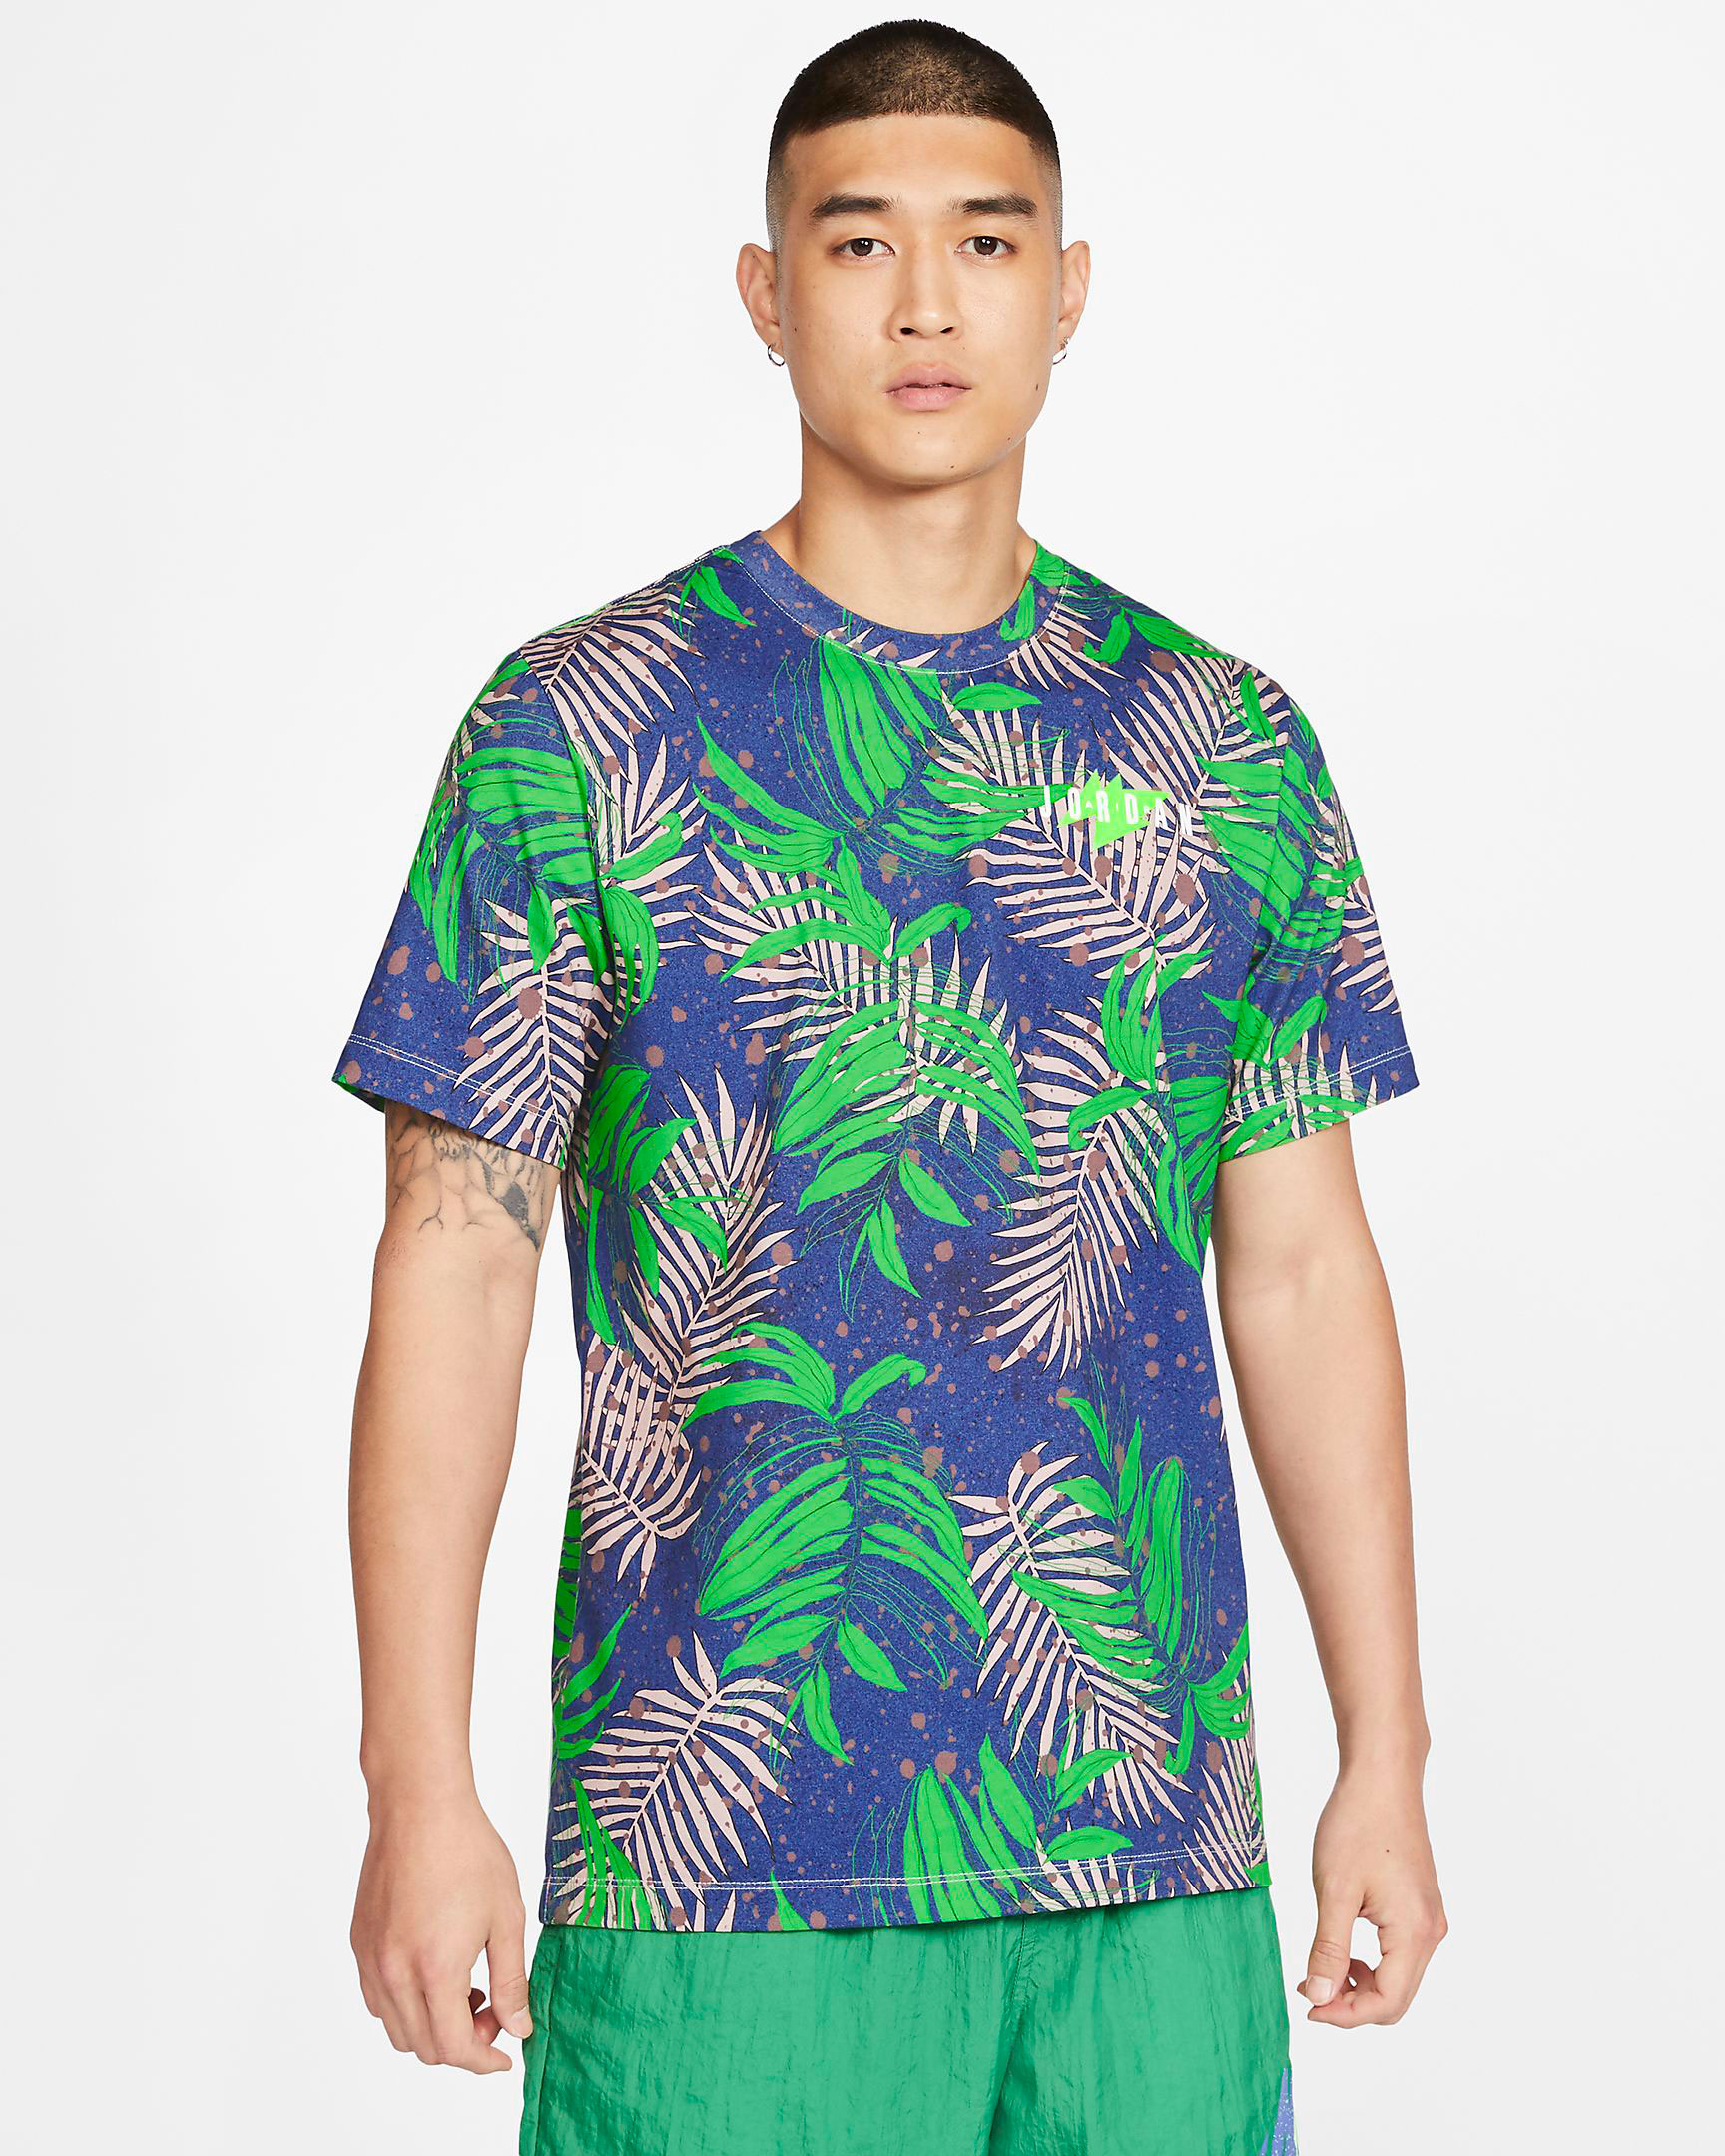 jordan-1-high-zen-green-shirt-match-2